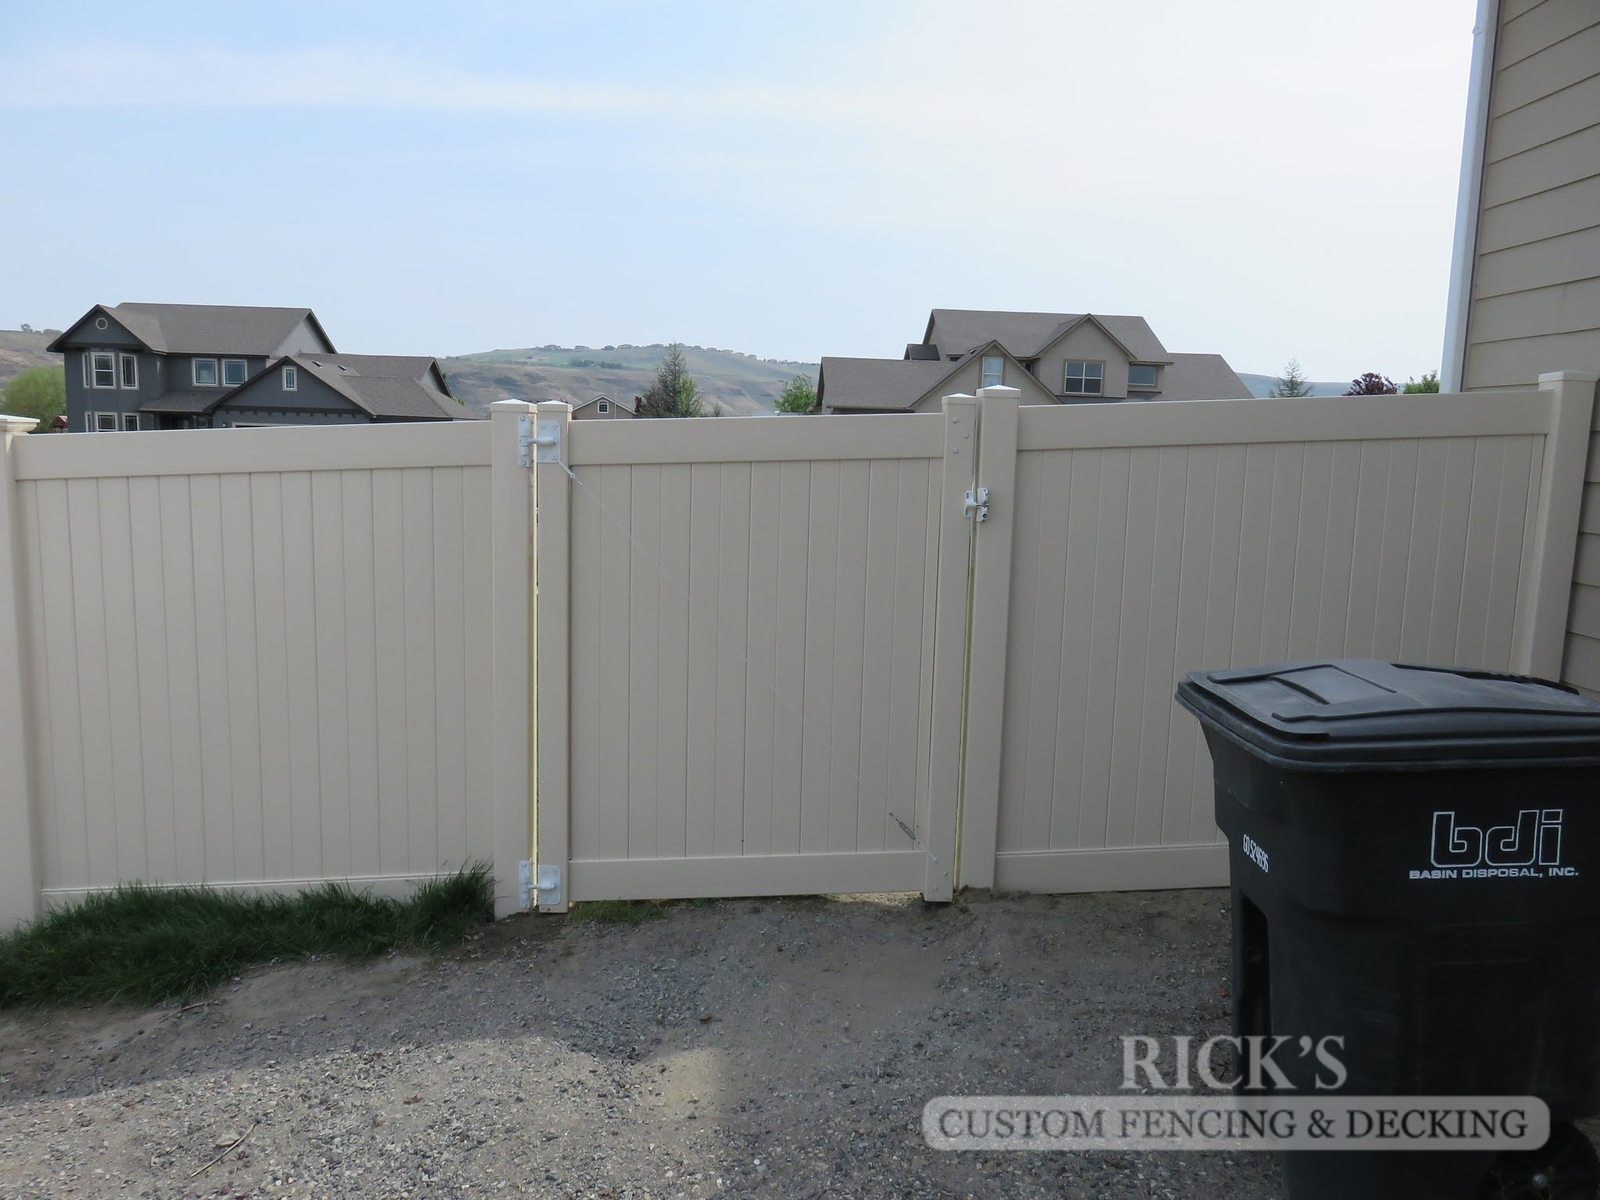 3016 - Vinyl Privacy Fencing